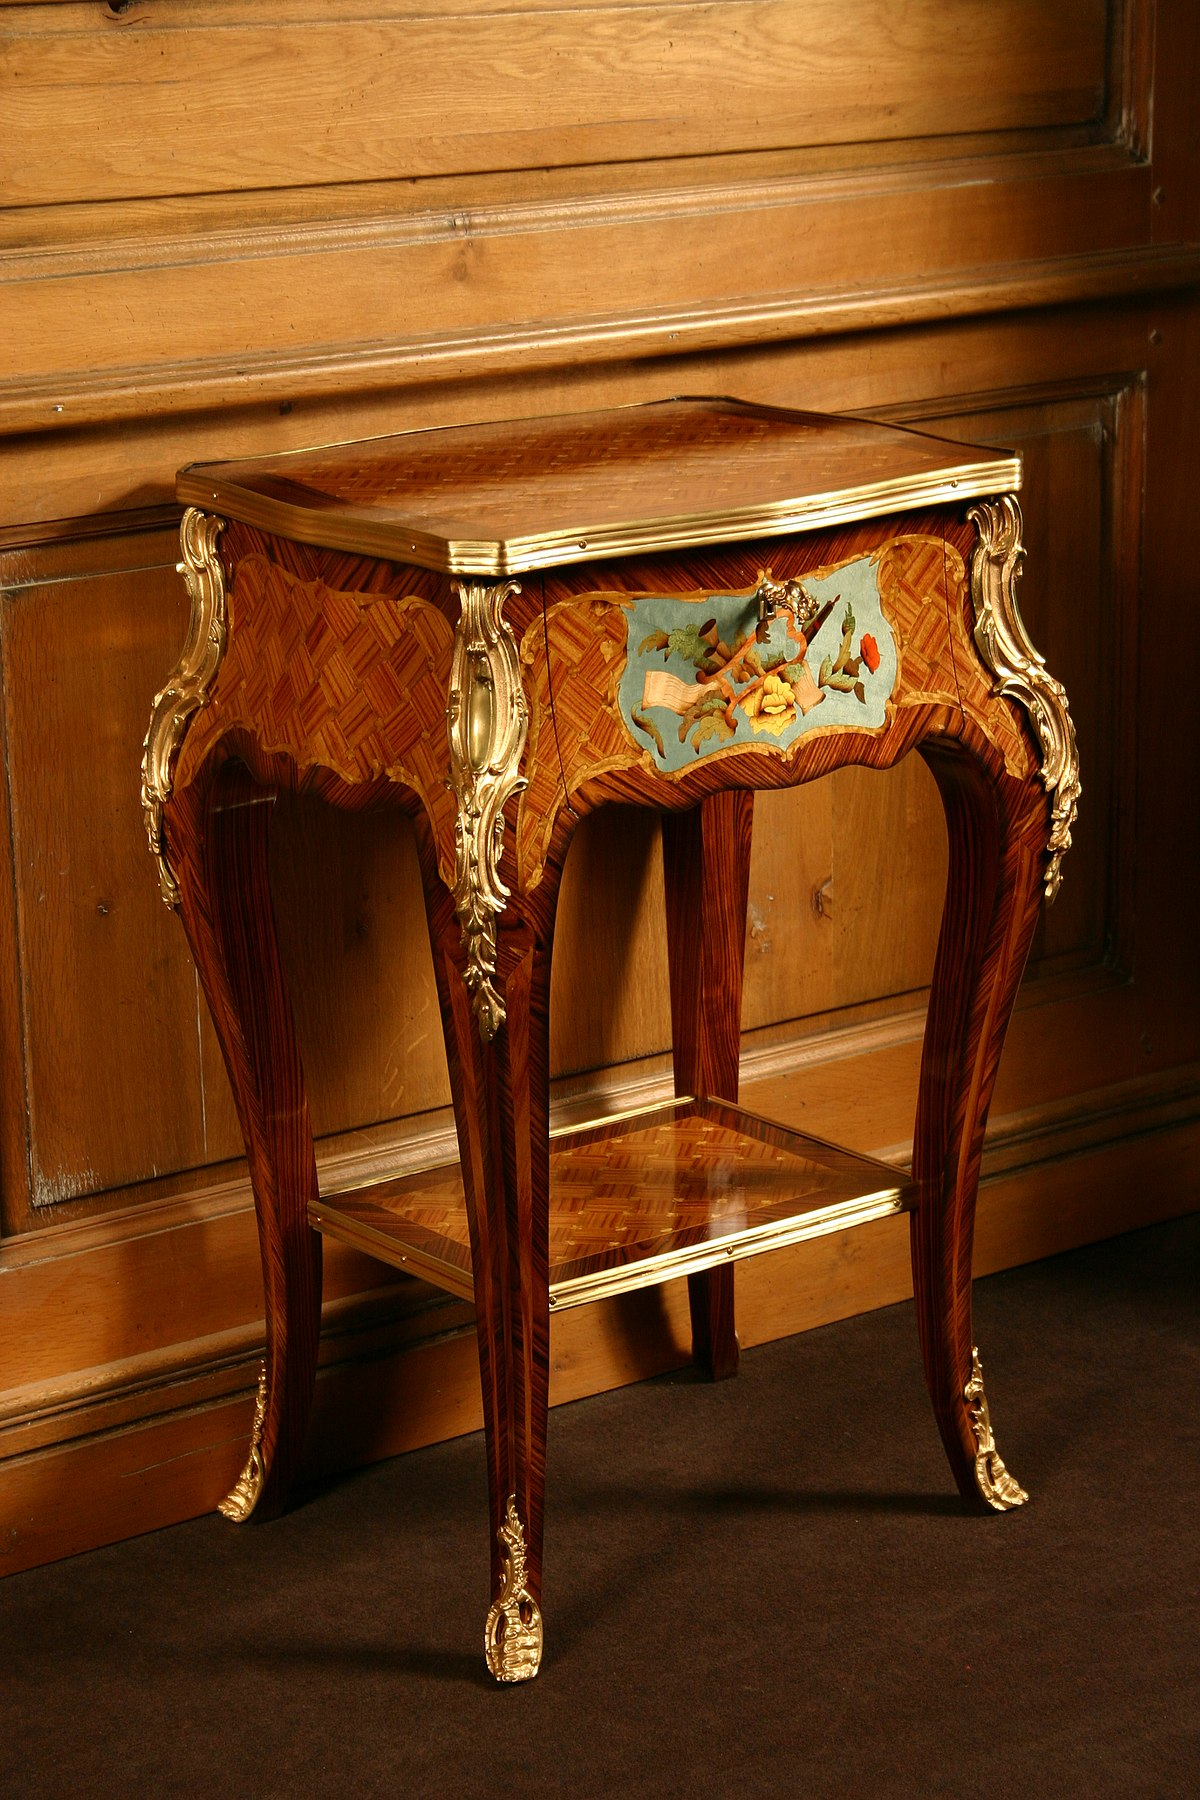 Table de chevet wikip dia - Table de chevet louis xv ...